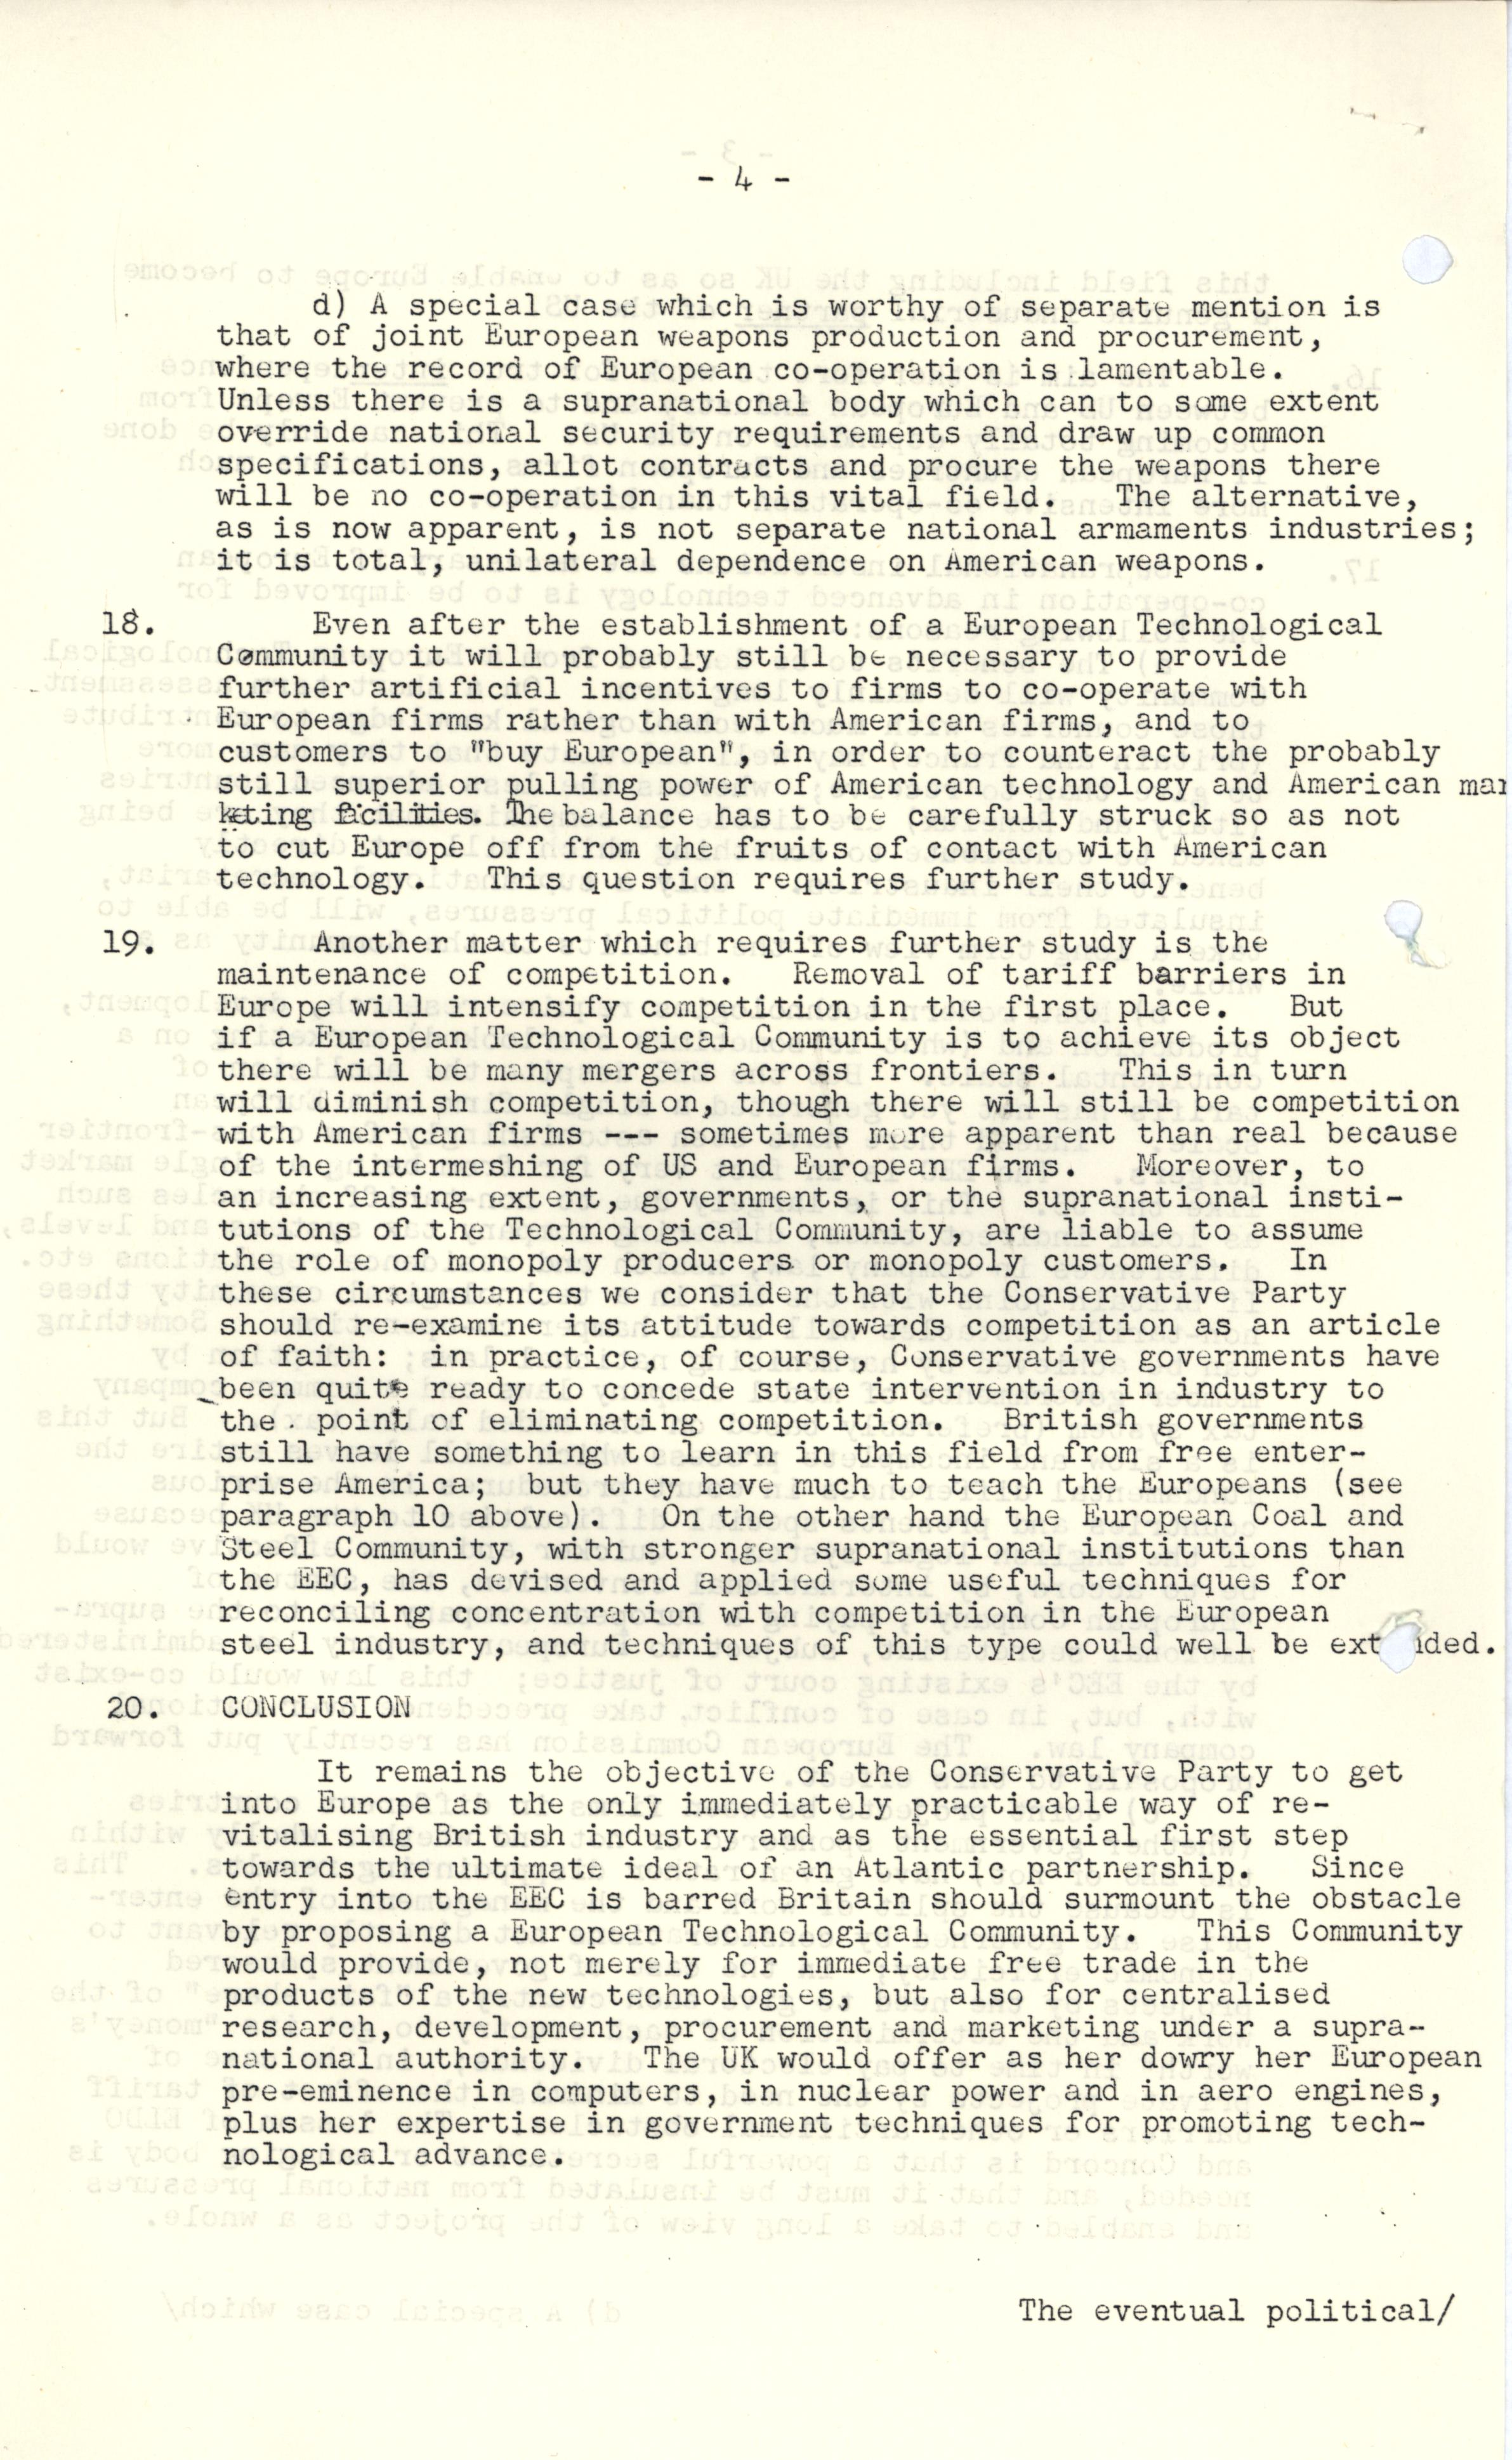 CRD 3/10/2/3: 'Preliminary Report by the Industrial Sub-Group' for the Committee on Europe (c. Nov-Dec 1966).